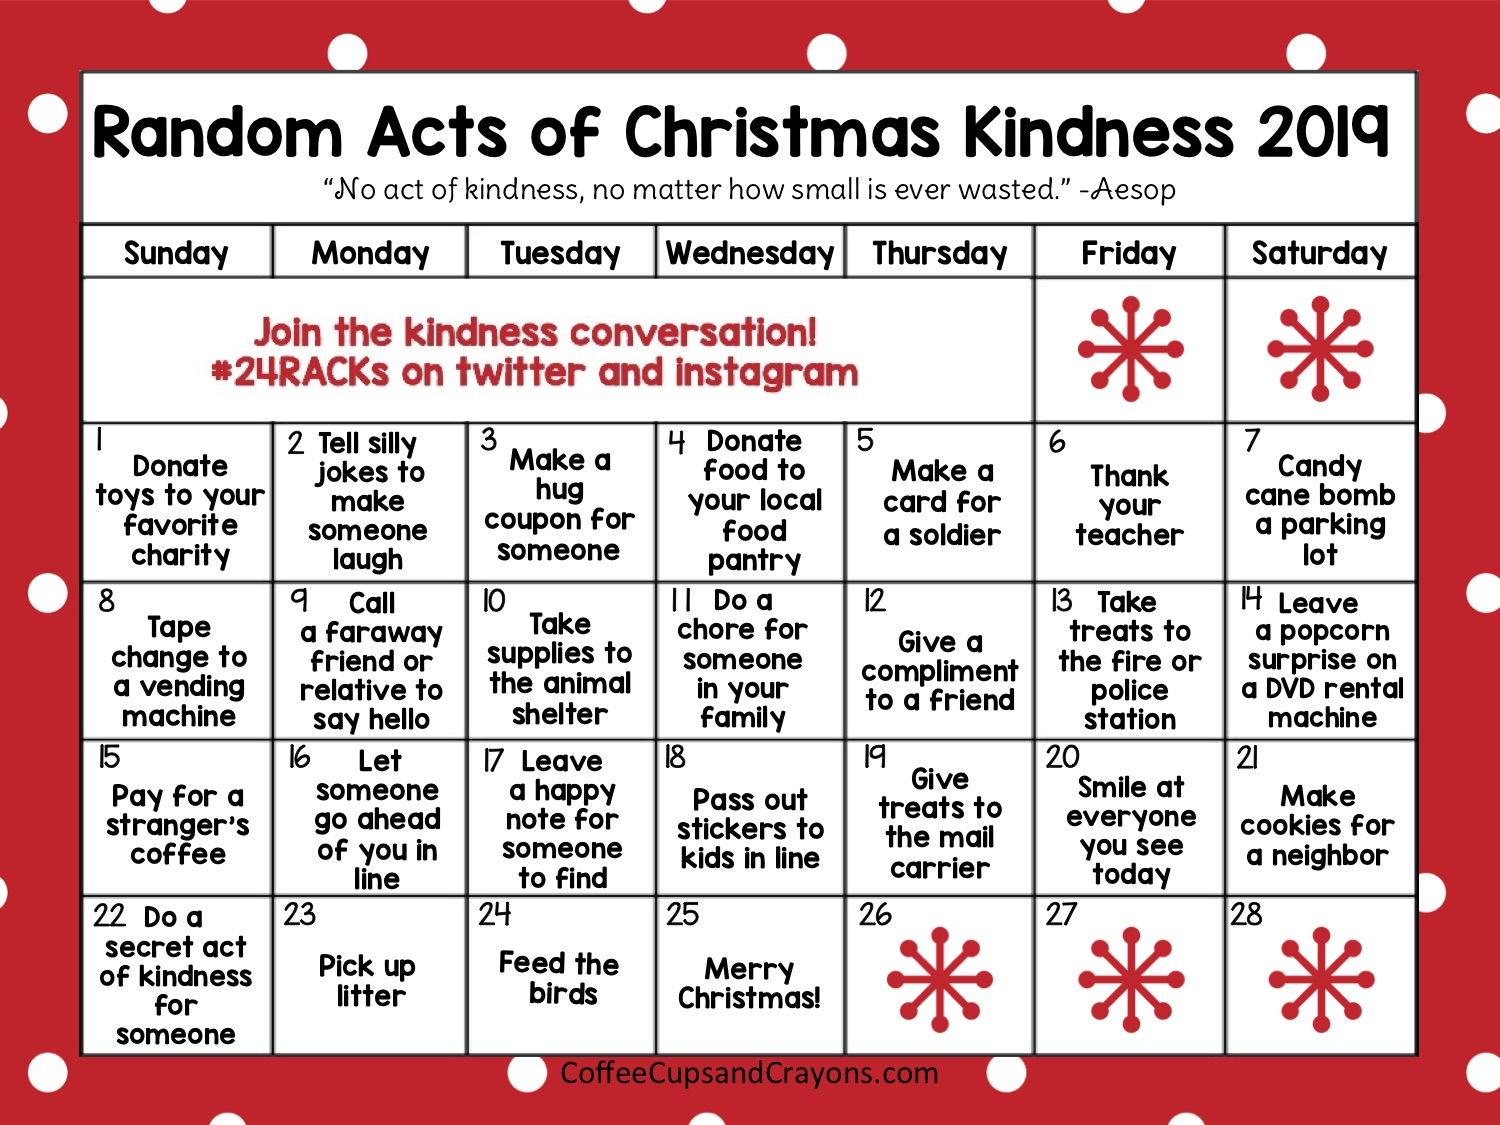 Christmas kindness calendar with red border